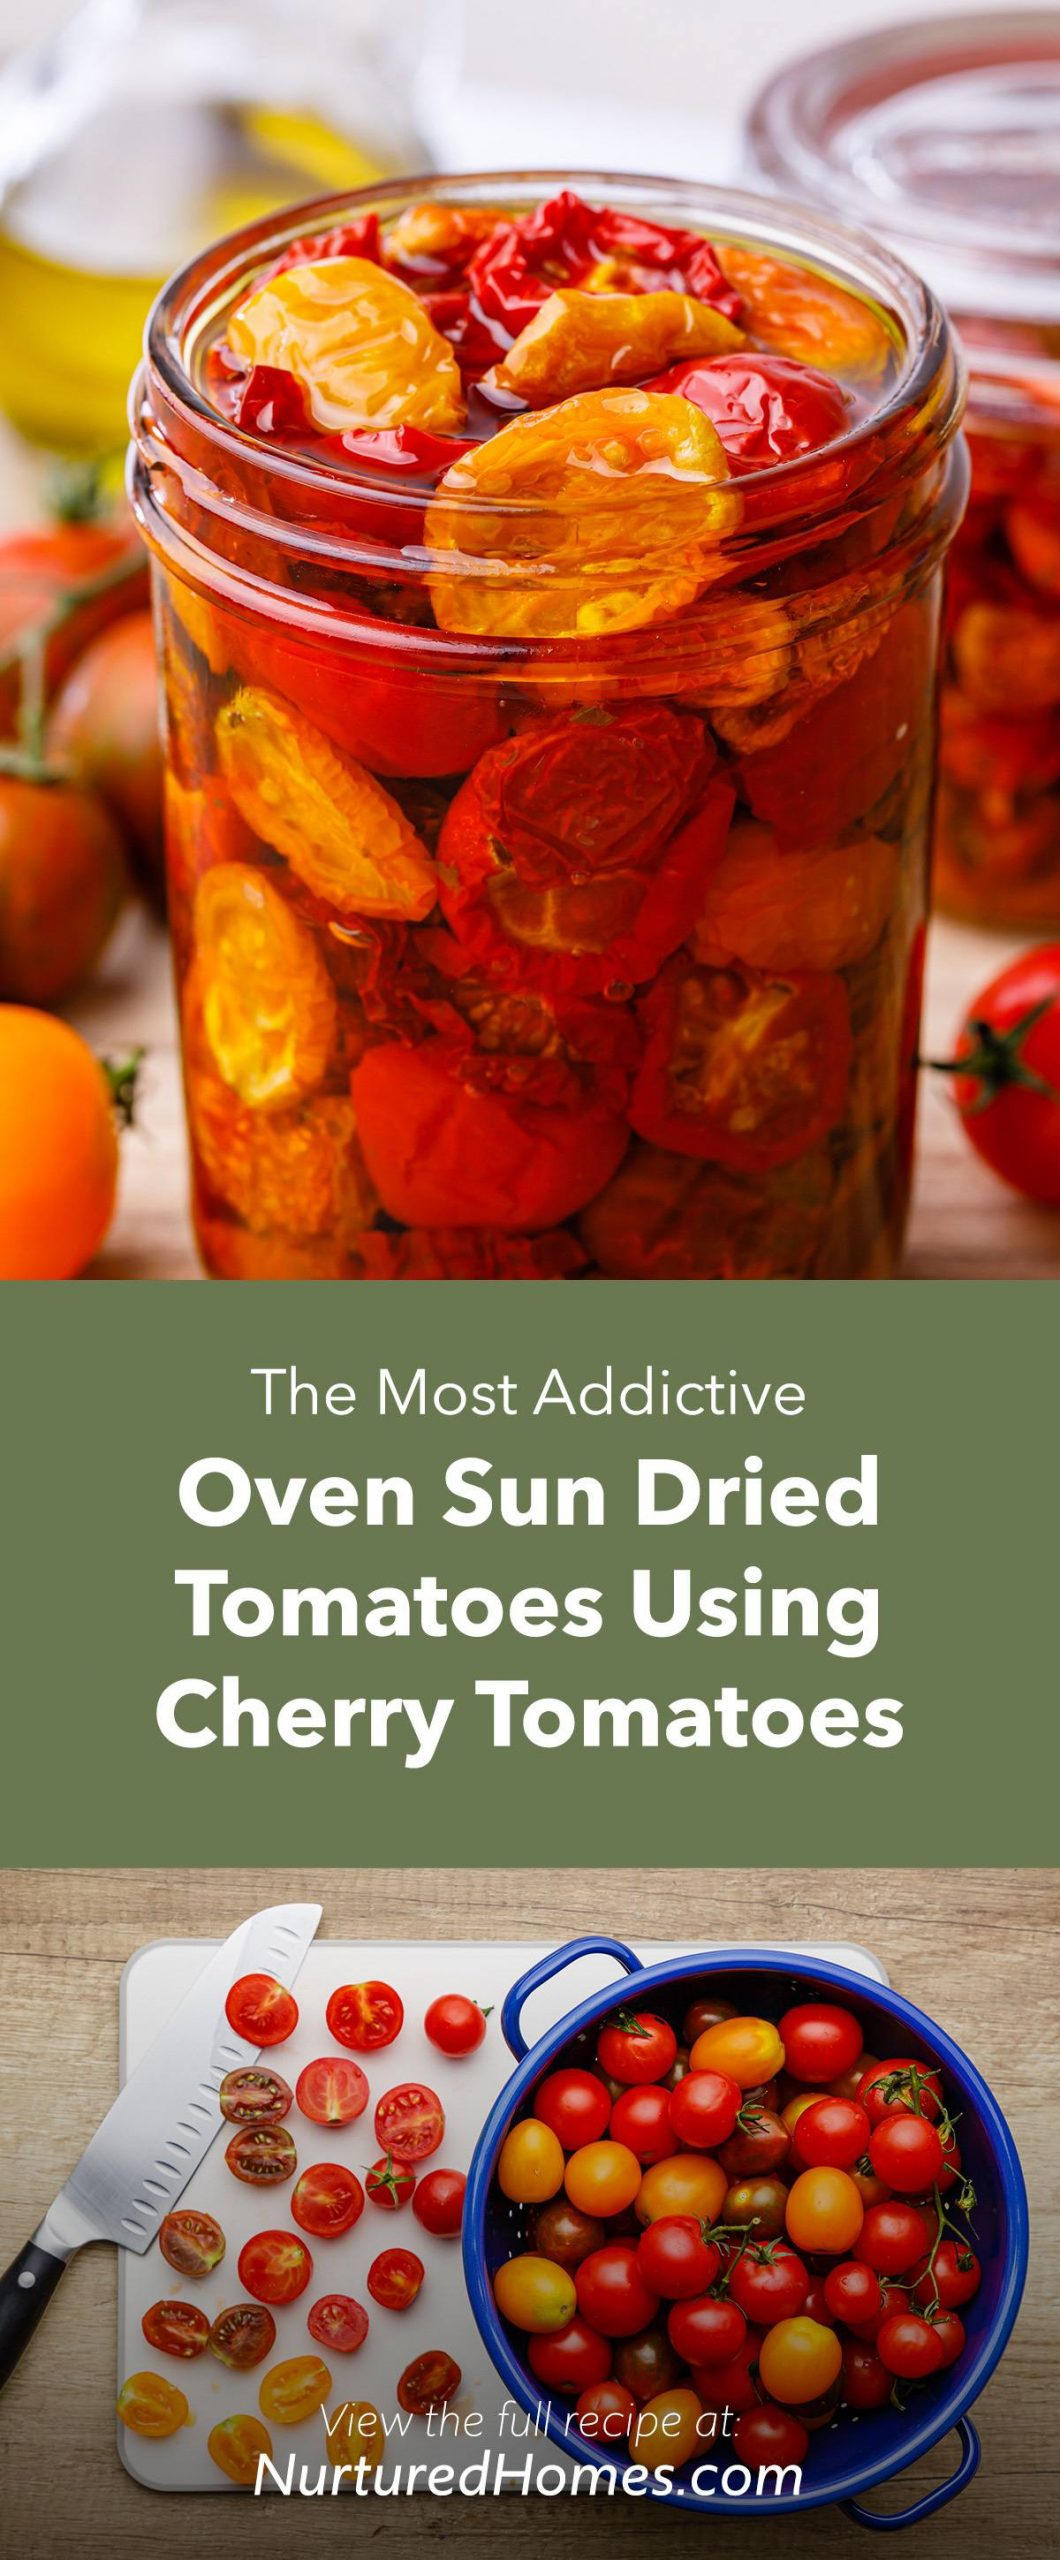 The Most Addictive Oven Sun Dried Tomatoes Using Cherry Tomatoes